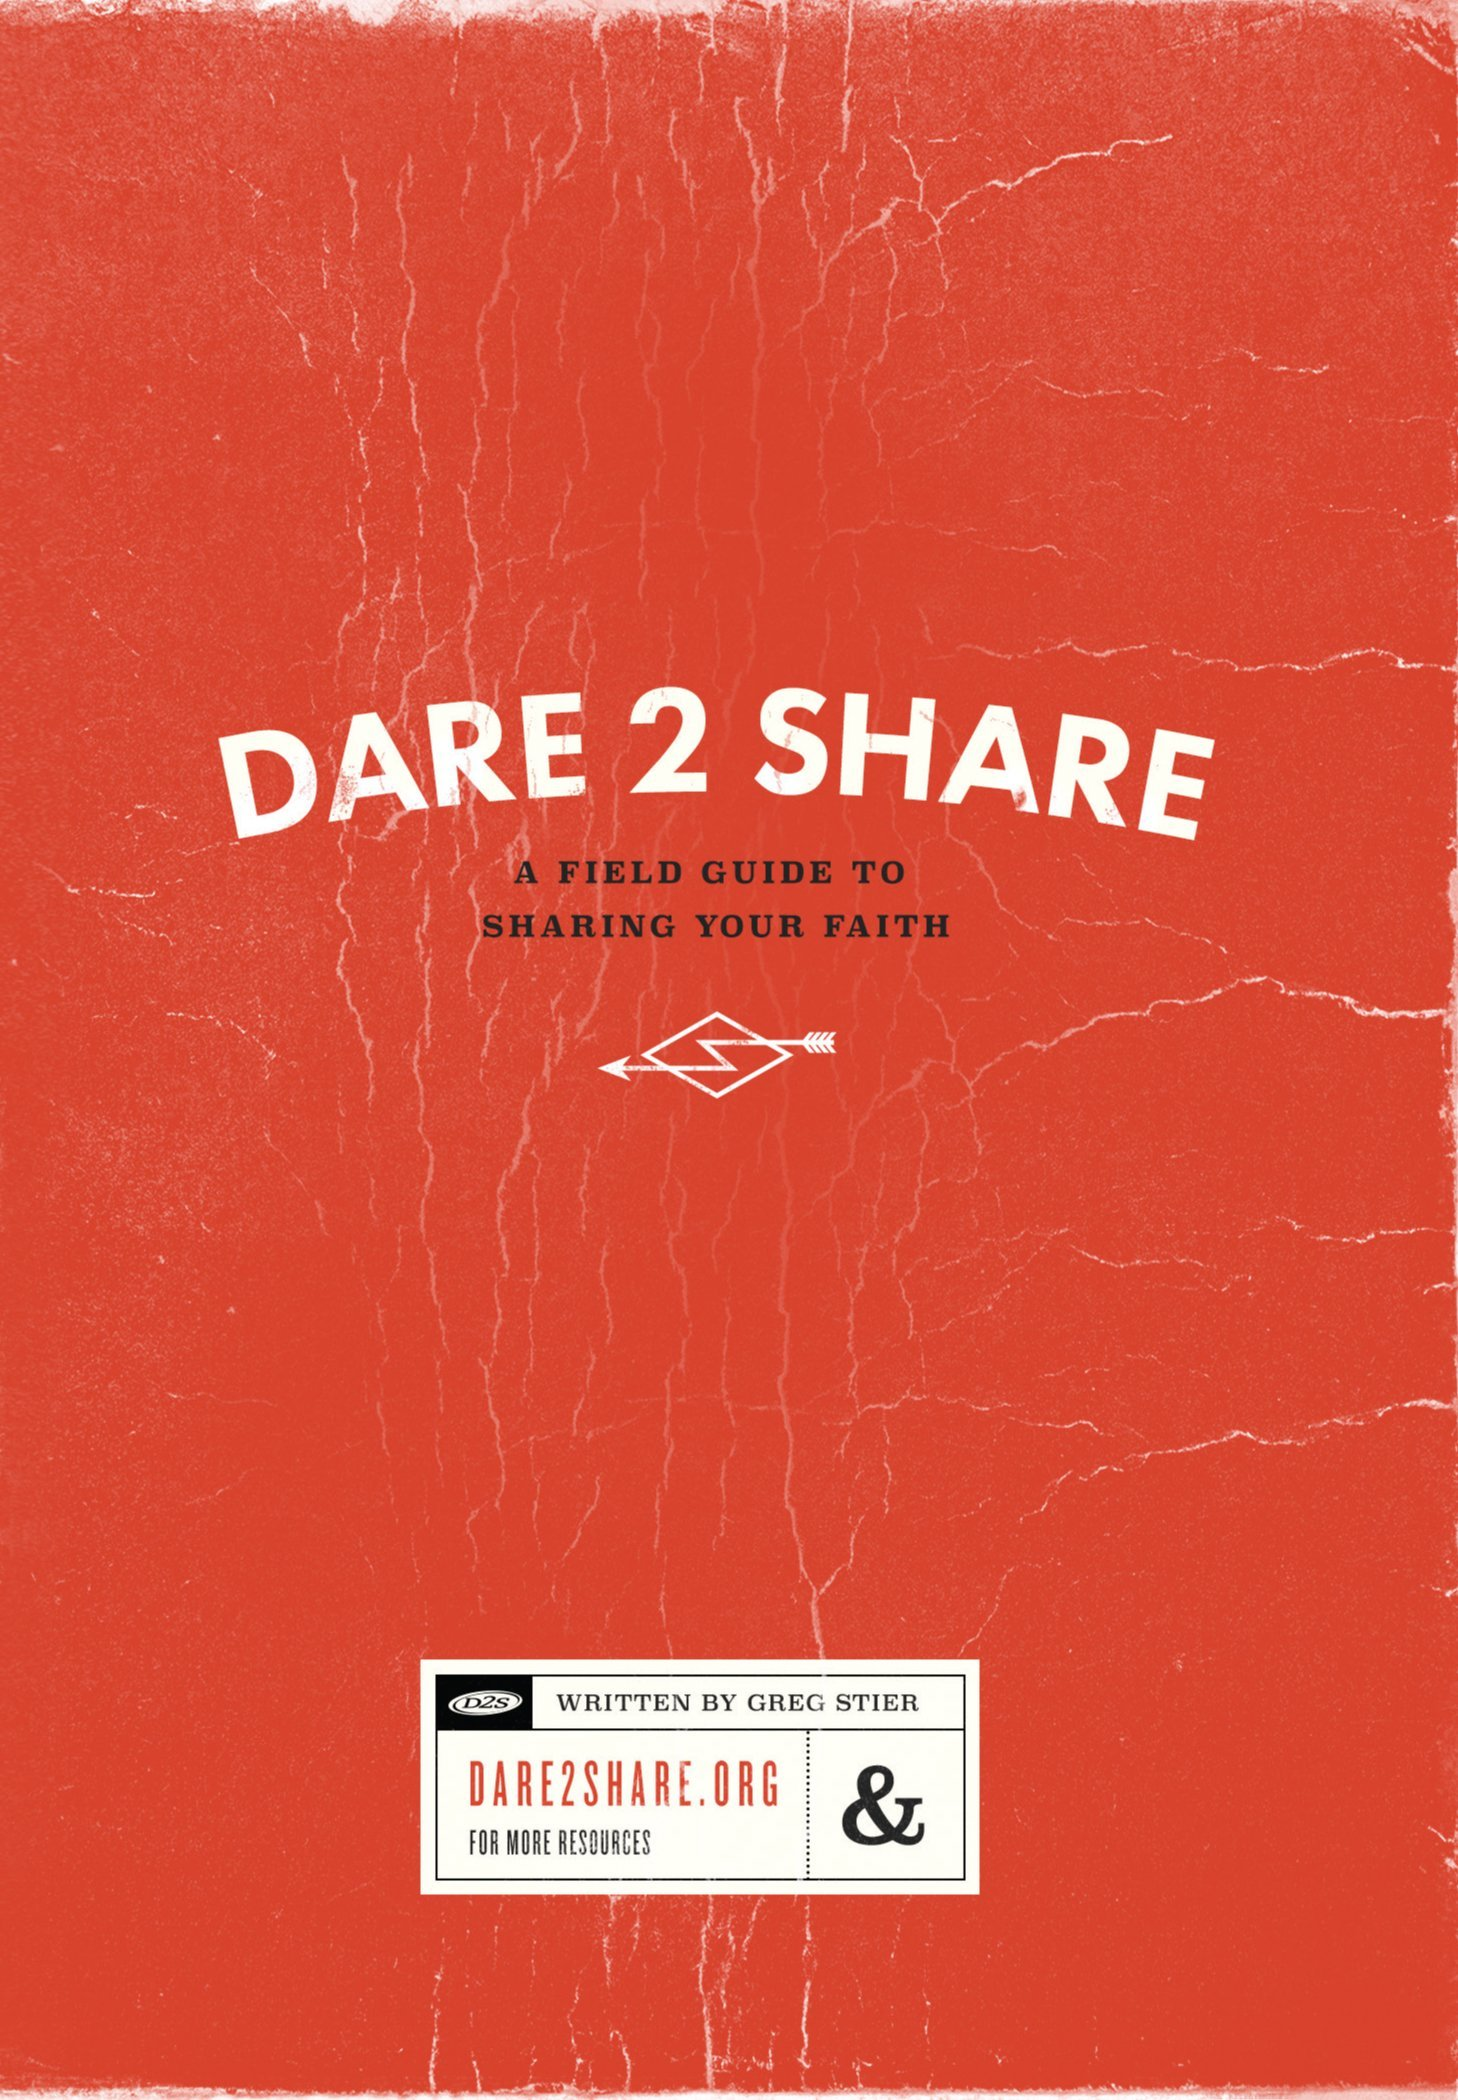 Dare 2 Share: A Field Guide for Sharing your Faith